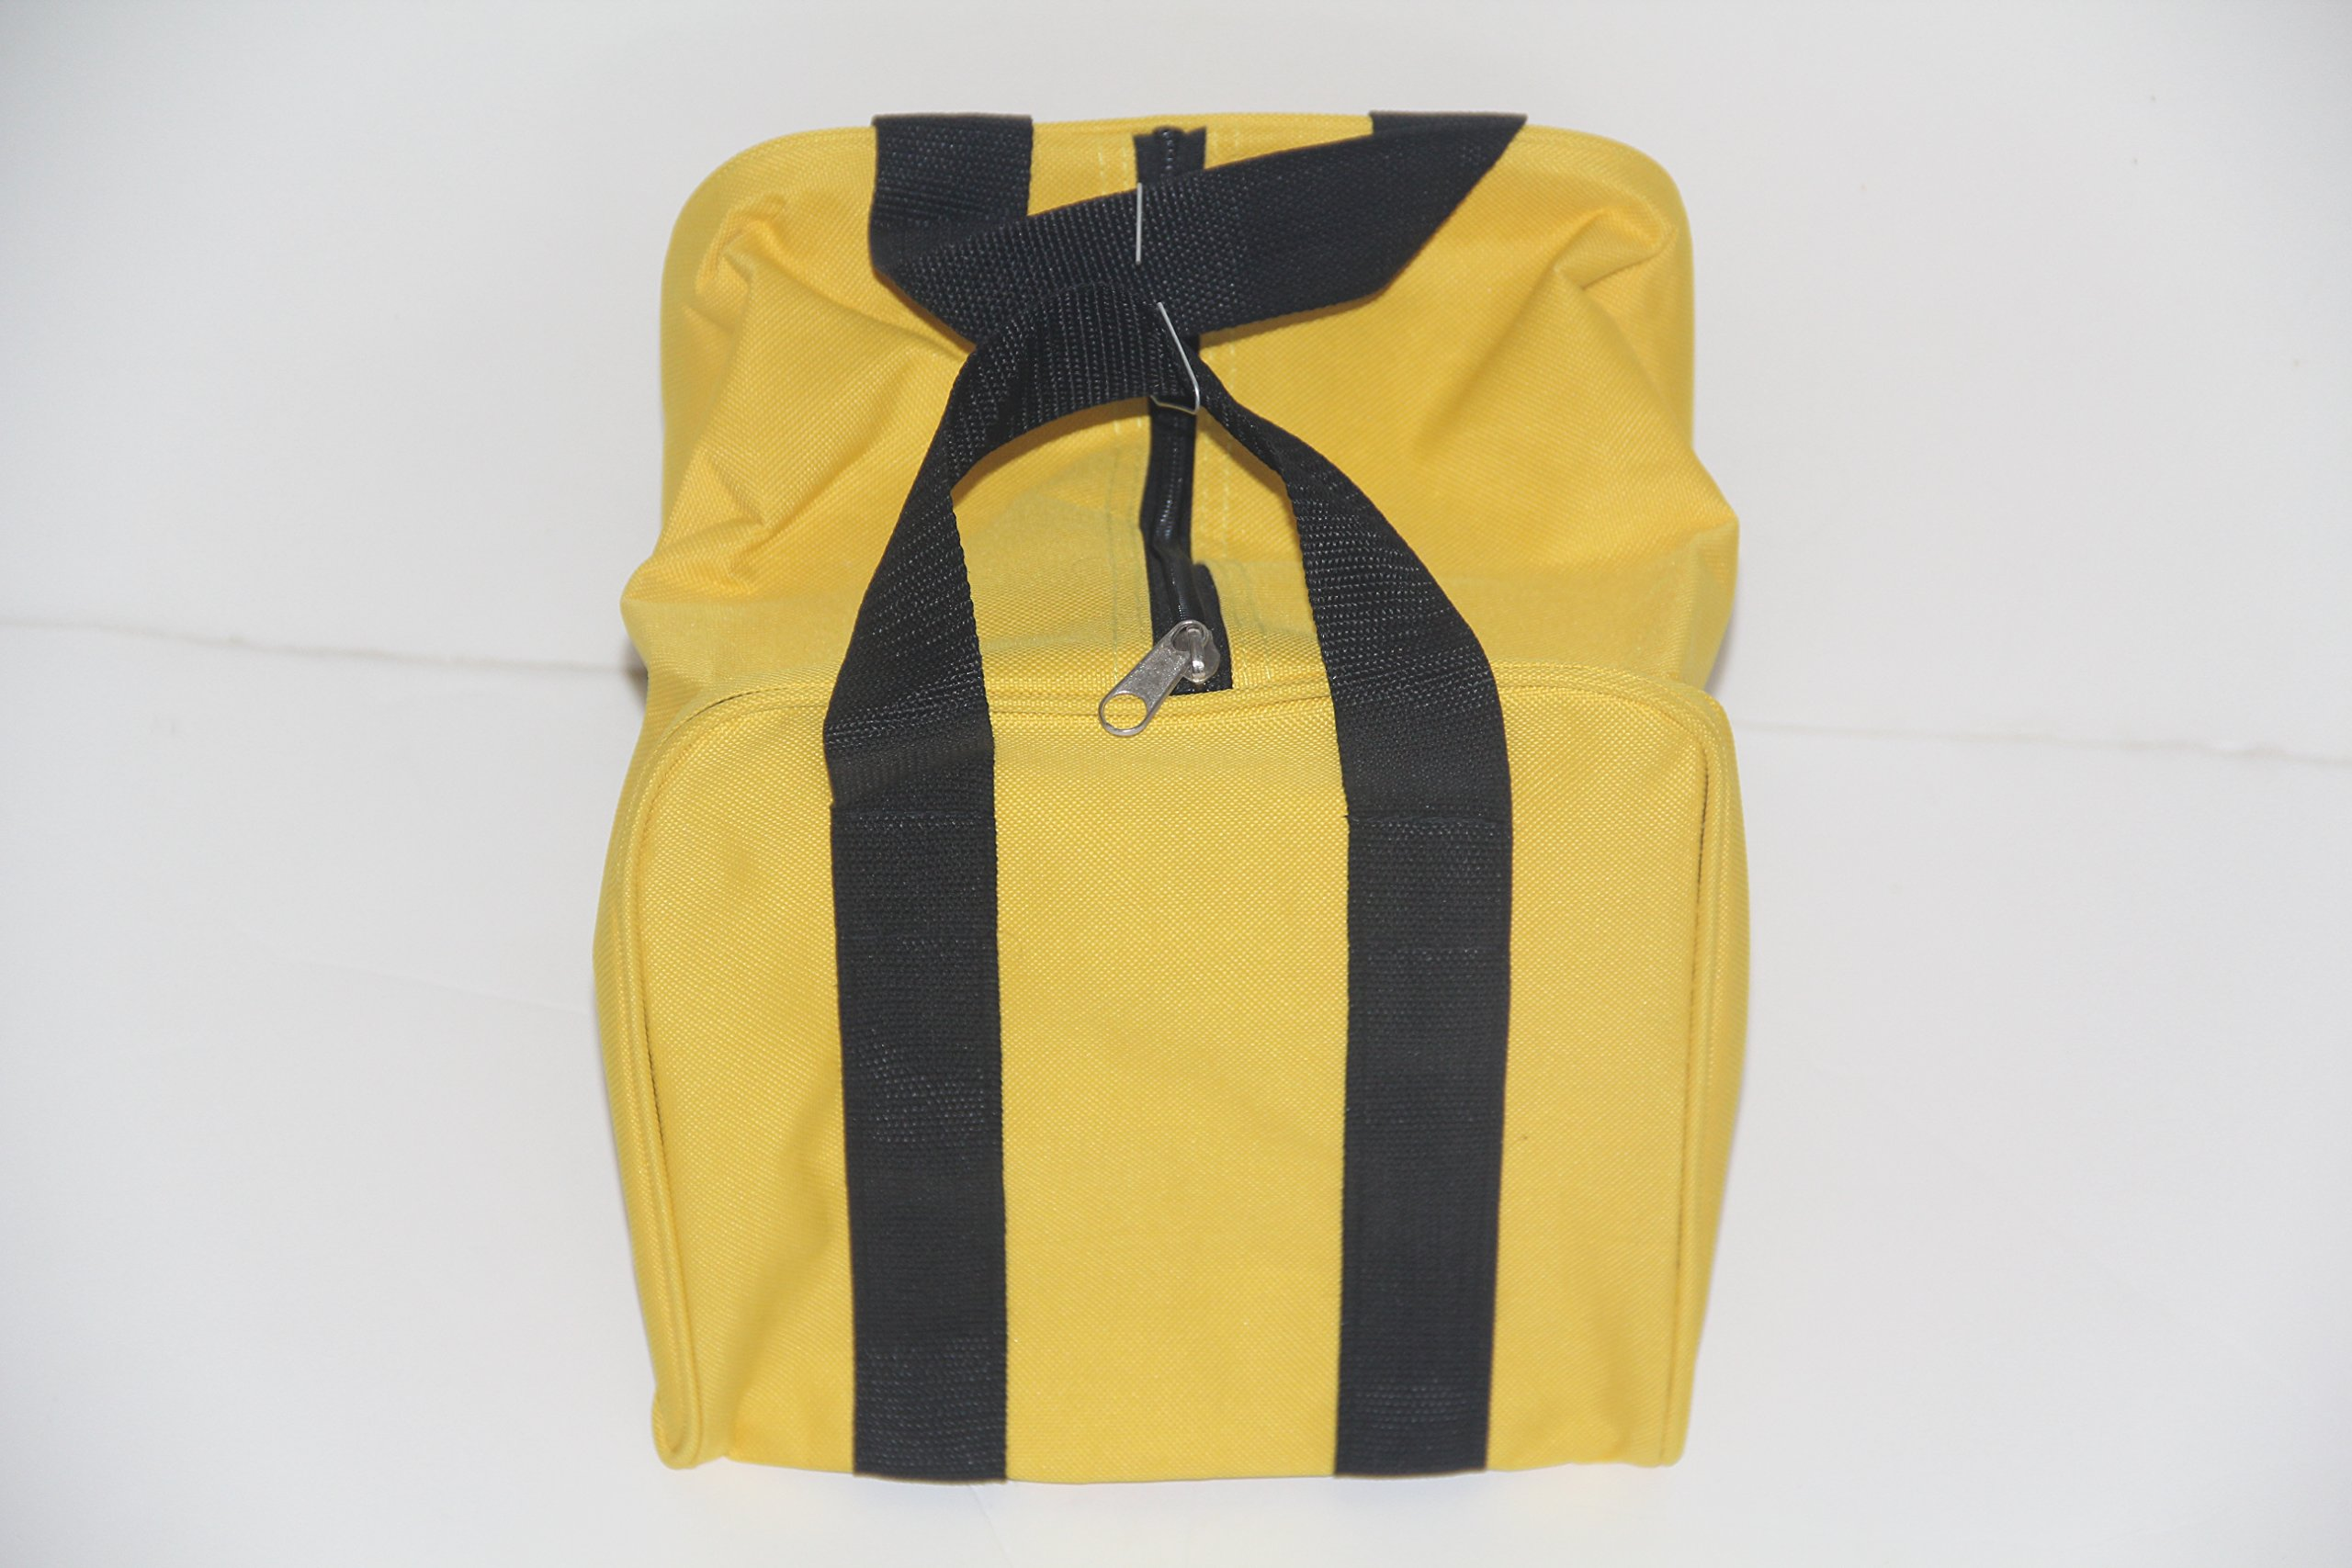 Premium Quality - Extra Heavy Duty Nylon Bocce Bag - Yellow with Black Handles by Epco